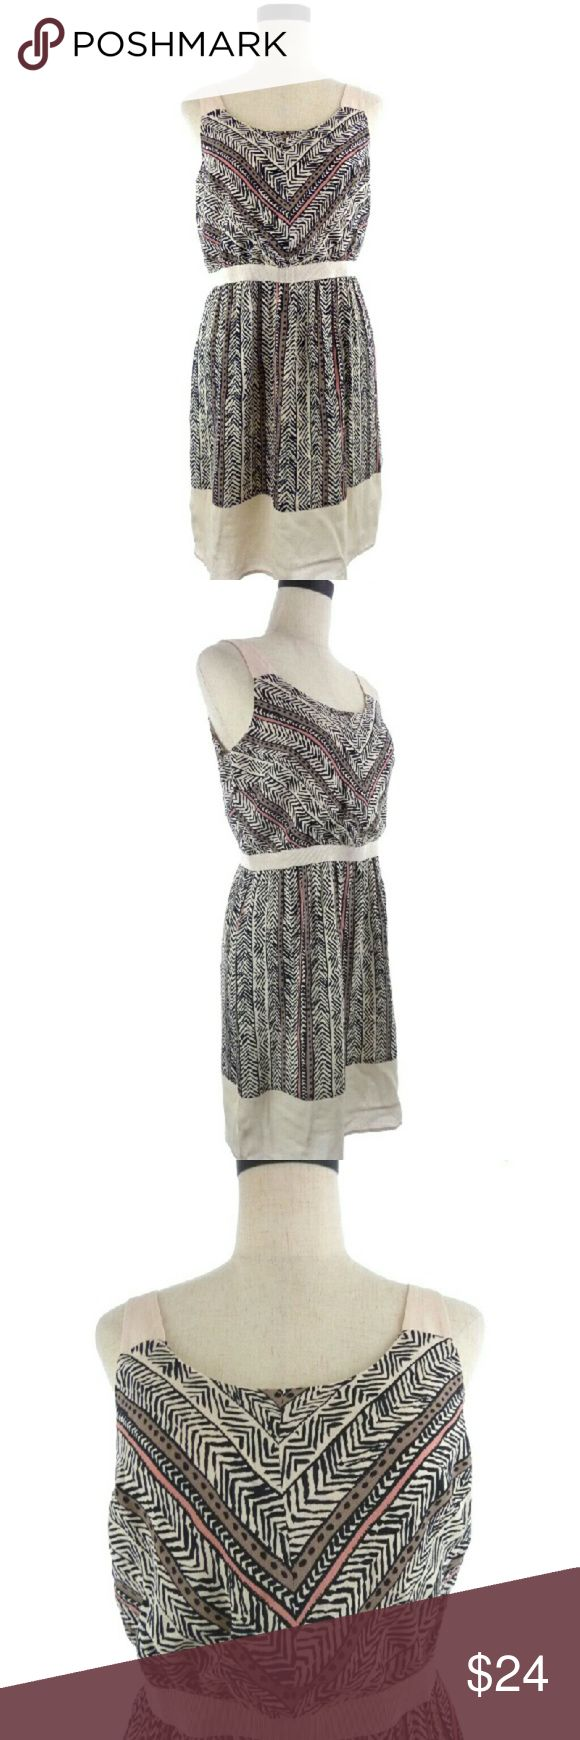 """Pale Pink Boho Dress Petite 6P Ann Tayloe Loft petite dress. Size 6P. Armpit to armpit is 17"""" across when flat. Shoulder to hem is 34"""". Waist is 14"""" across. 100% Rayon with polyester lining. Delicate pale pink with contrasting black and mauve  animal like print. Elastic type waist.  wd0636 Ann Taylor Loft Dresses Midi"""